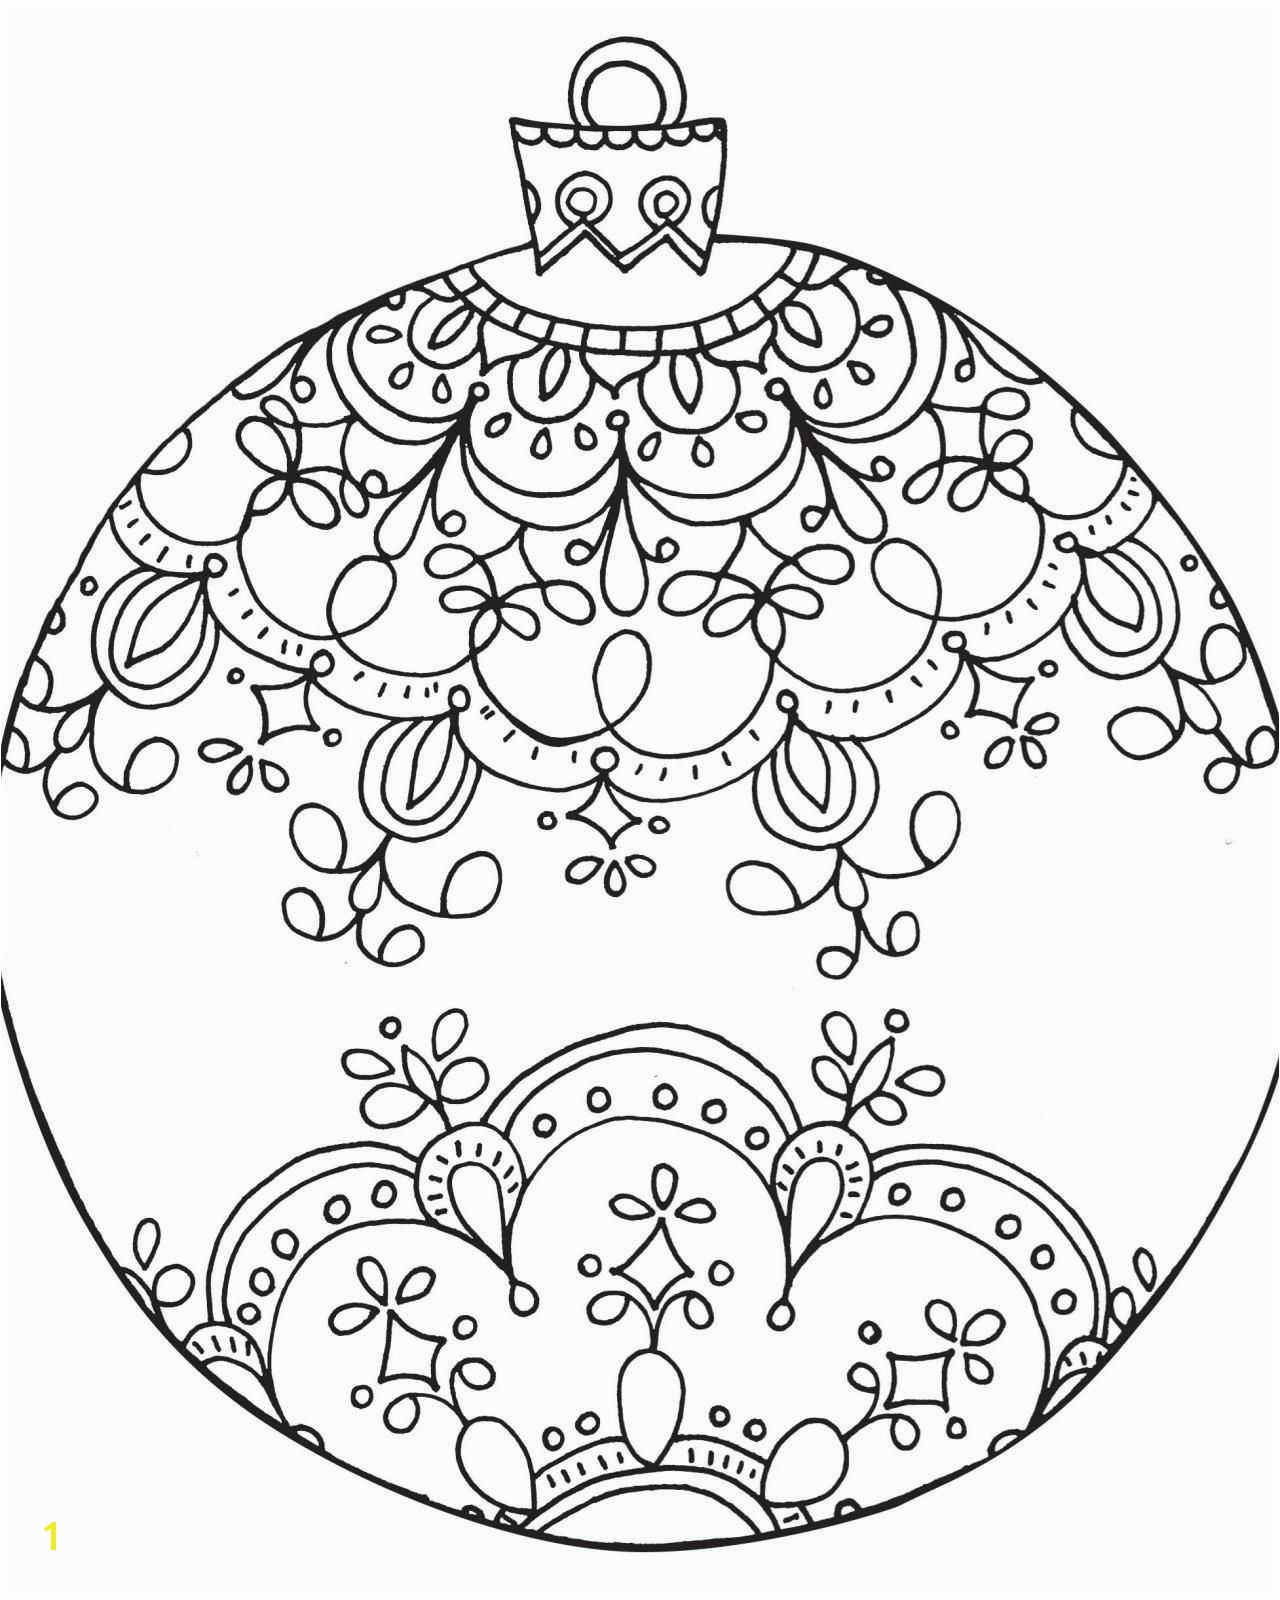 Ornament Coloring Page Baby Coloring Pages New Media Cache Ec0 Pinimg Originals 2b 06 0d